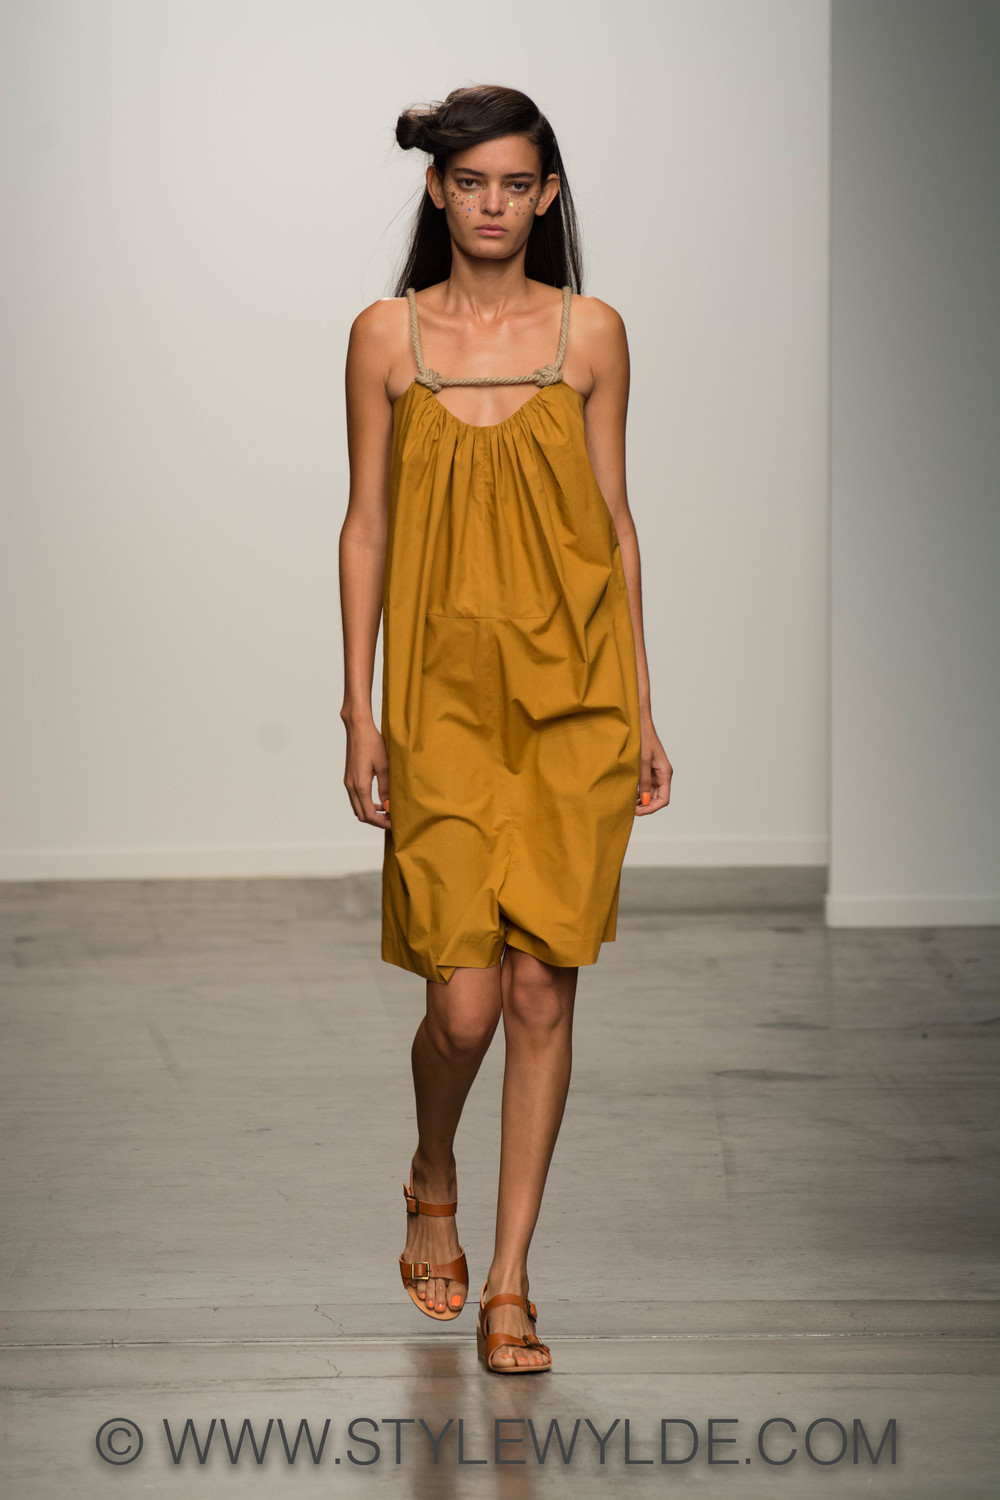 StyleWylde_adetacher_FOH_SS15_sw (26 of 37).jpg